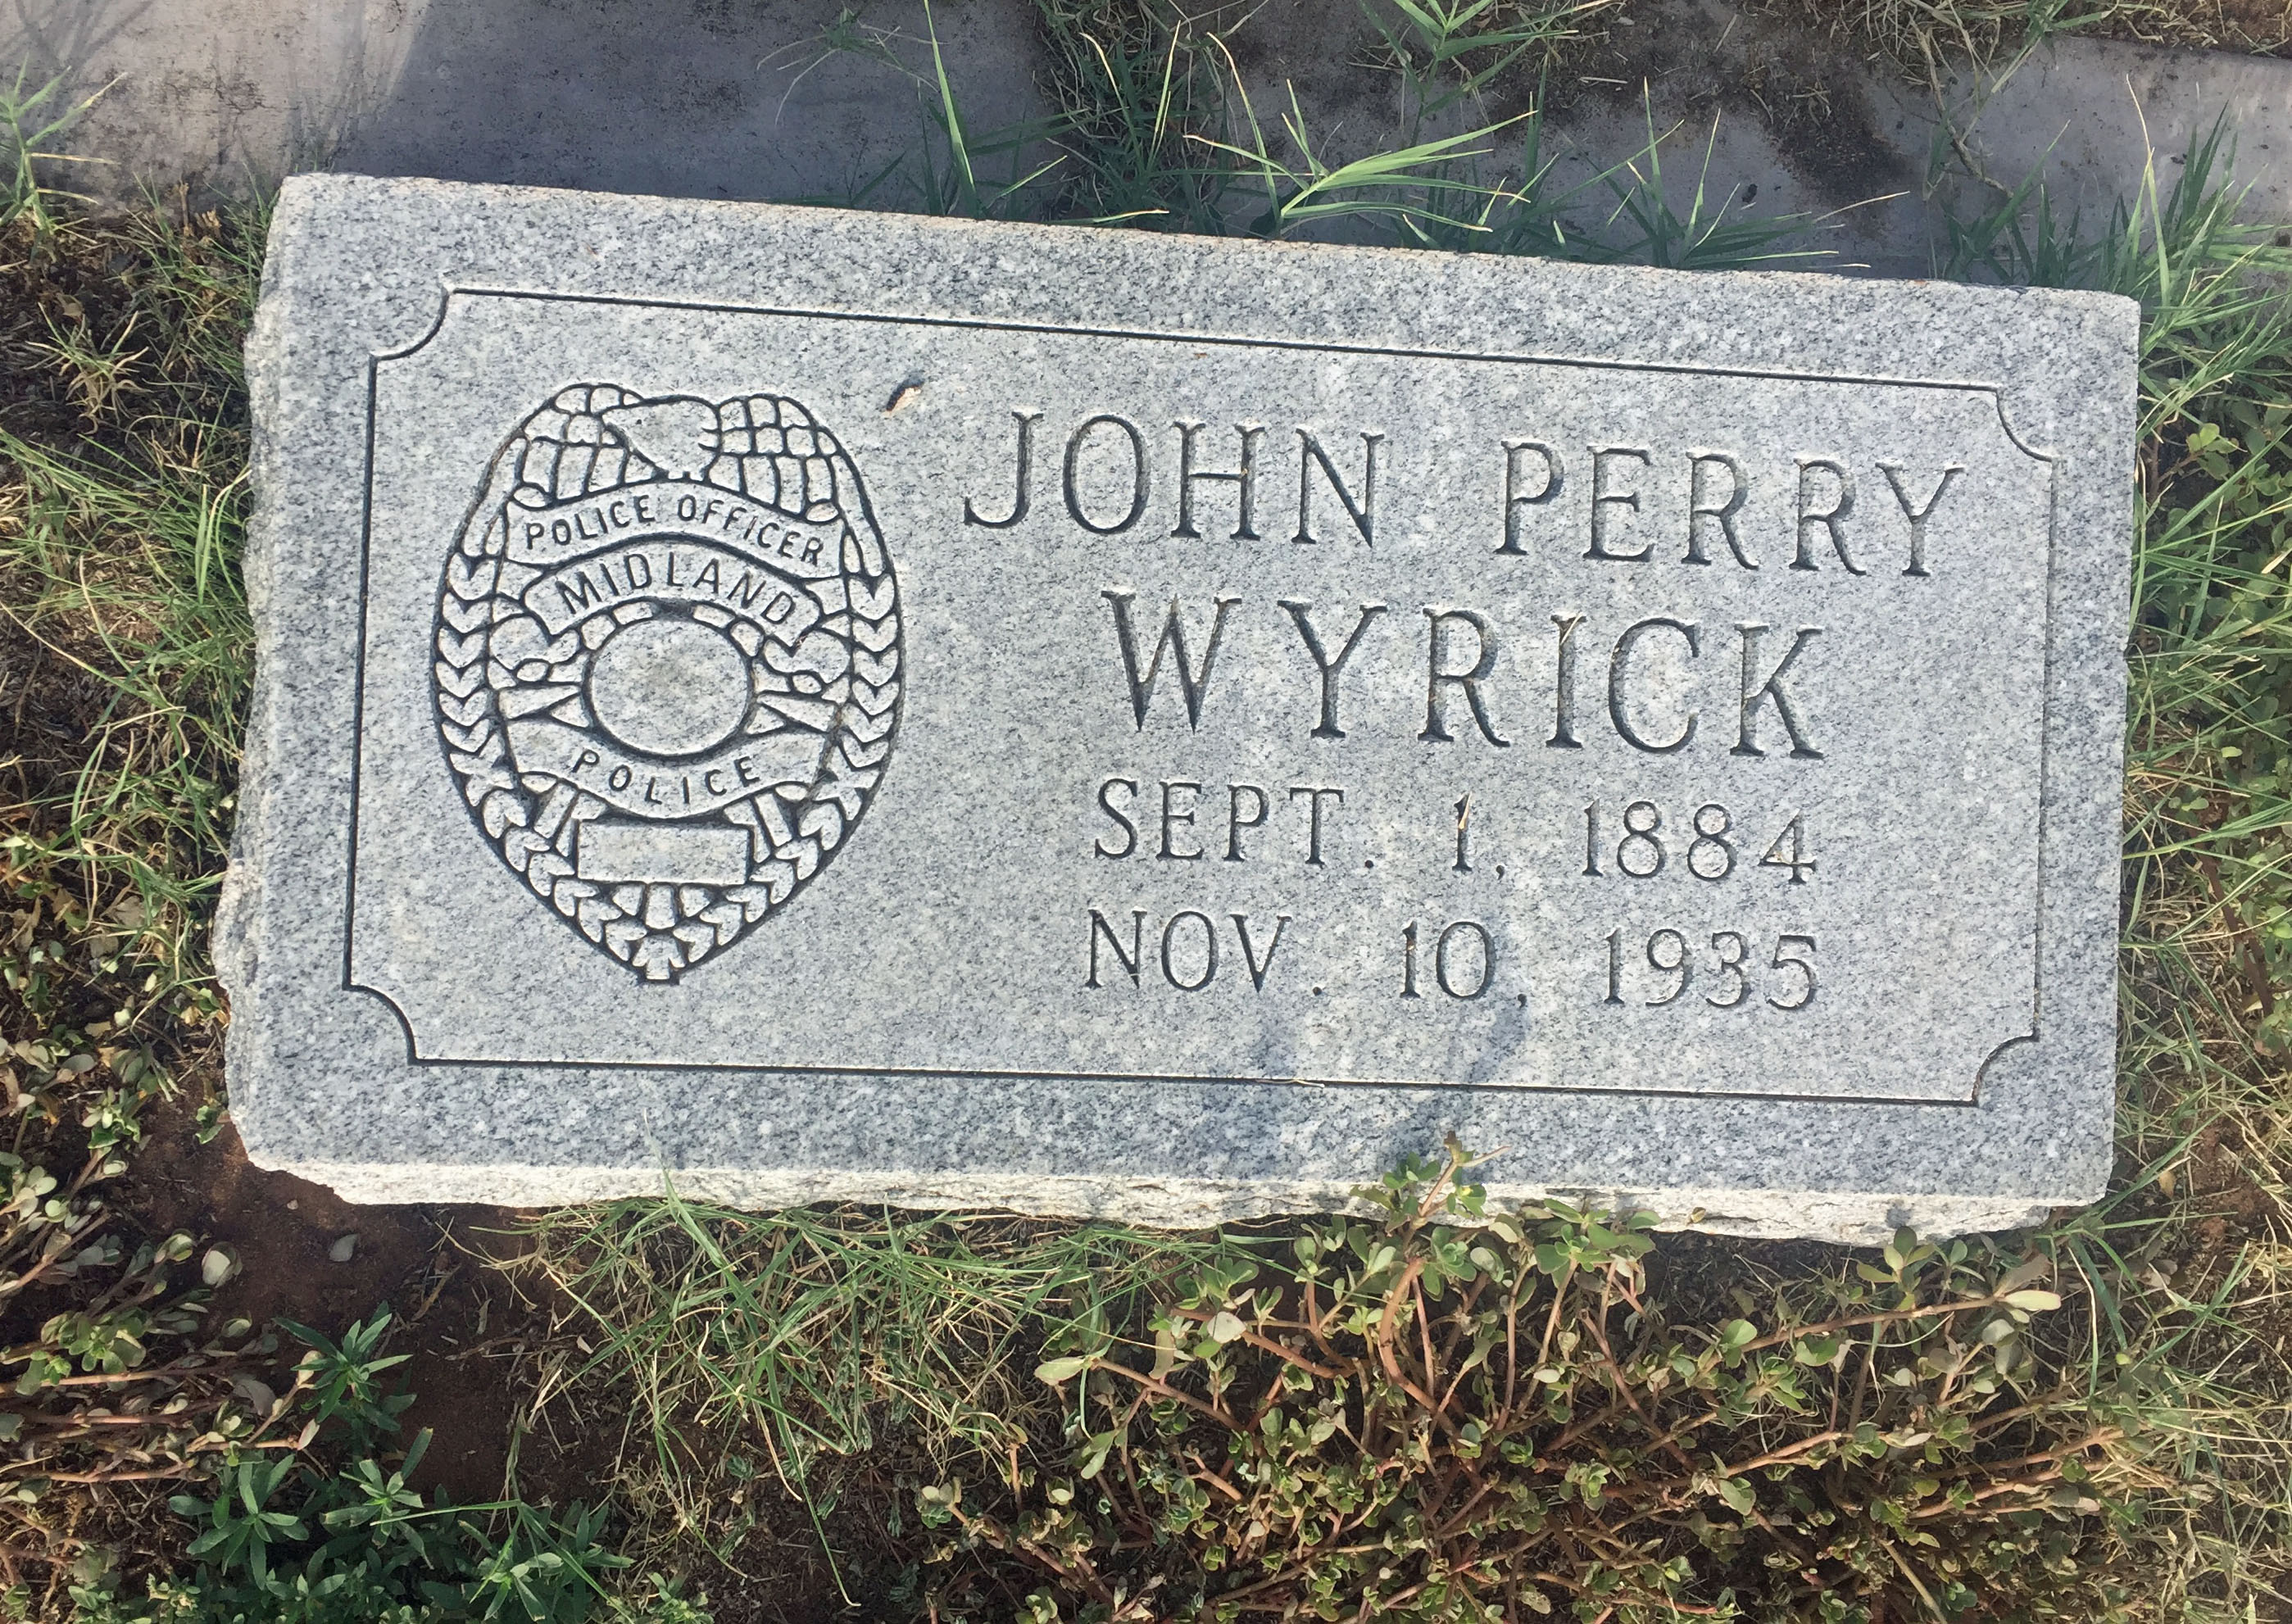 Police Officer John Perry Wyrick | Midland Police Department, Texas